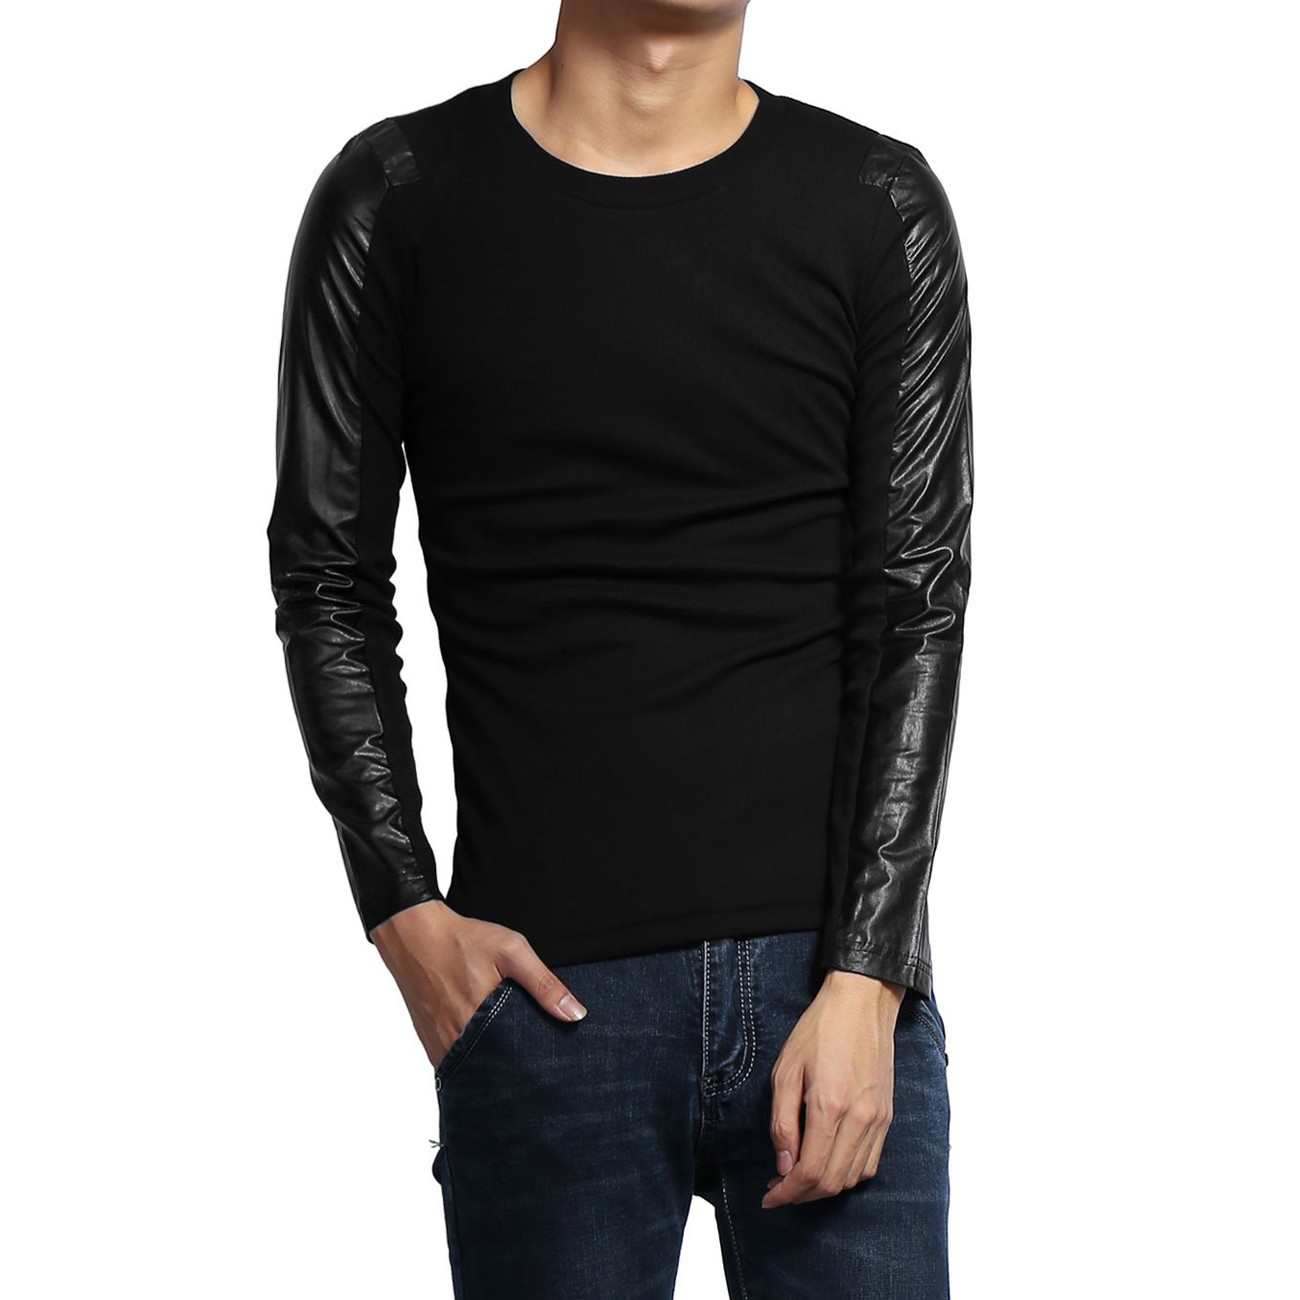 Find great deals on eBay for leather sleeve shirt men. Shop with confidence.